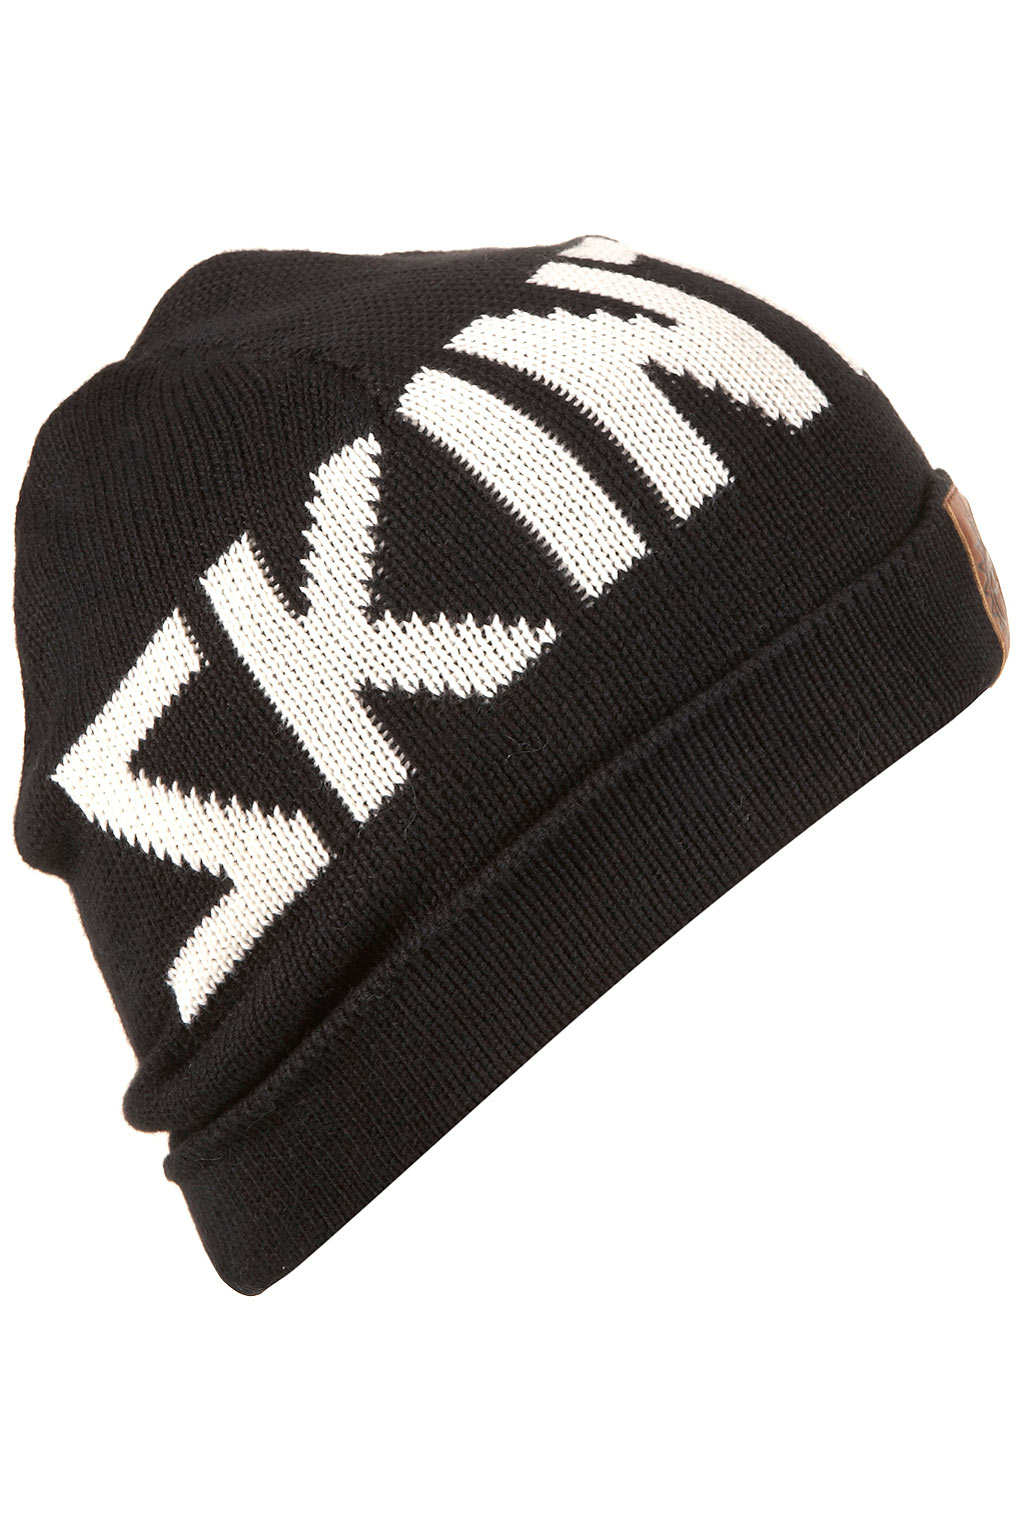 Topshop Skint Beanie Hat By Illustrated People in Black | Lyst